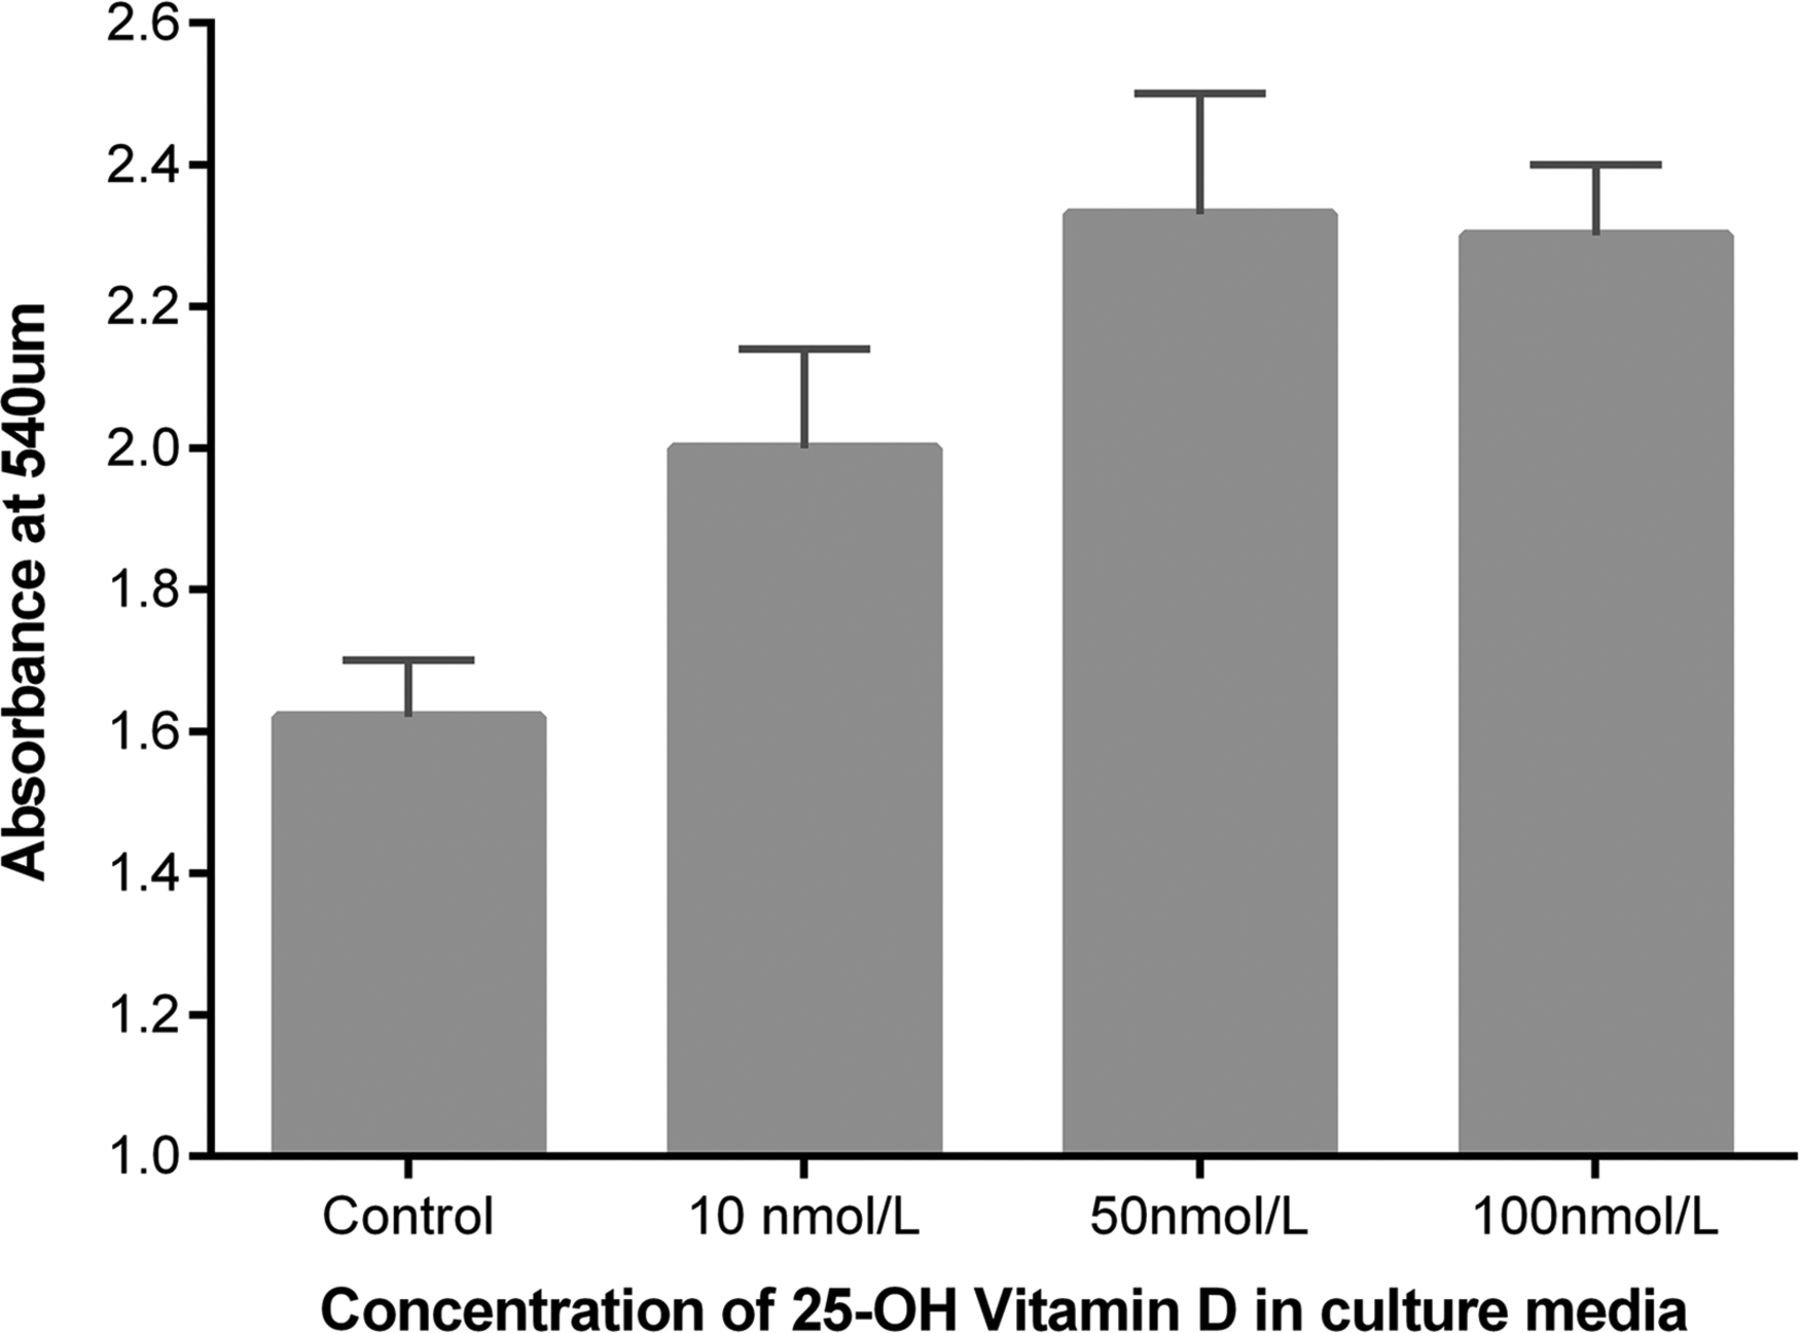 Vitamin D deficiency contributes directly to the acute